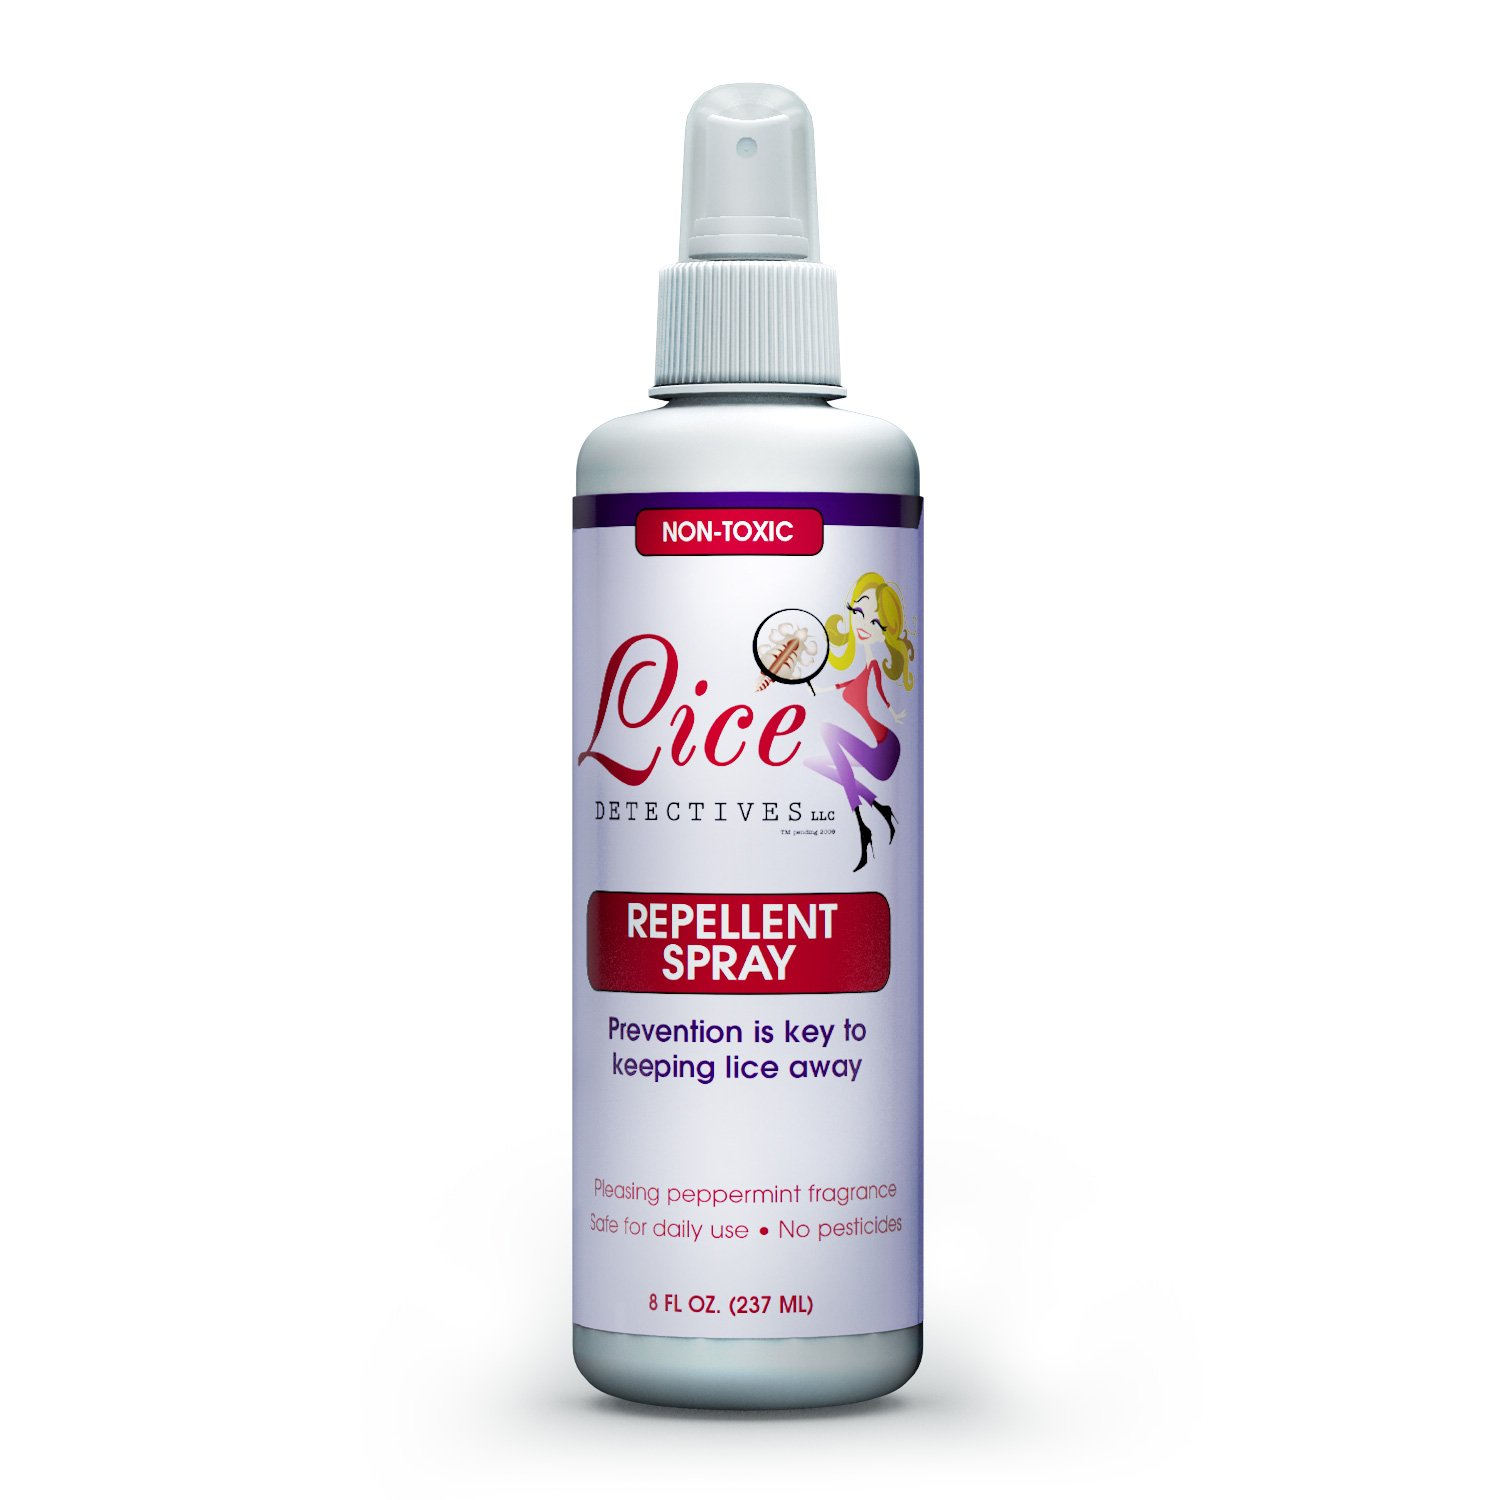 Lice Detectives Head Lice Prevention Treatment - Natural Essential Oils Repellent Spray - Daily Treatment for Kids - 8 oz (8 oz)